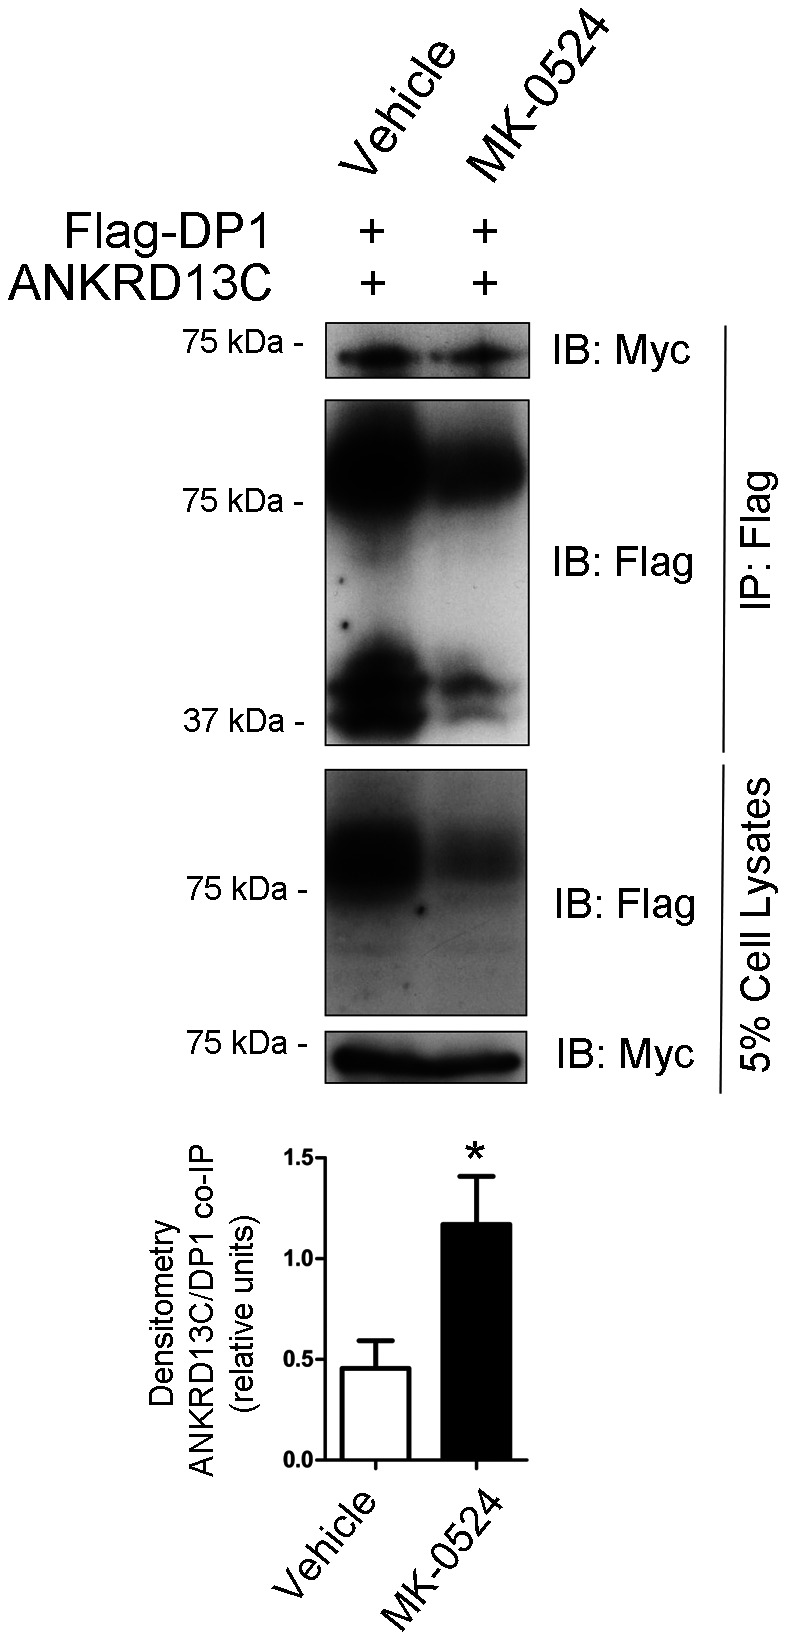 """MK-0524 promotes the interaction between DP1 and the ANKRD13C protein. HEK293 cells transiently co-expressing Flag-DP1 and ANKRD13C-myc were treated with vehicle (ethanol) or 1 µM MK-0524 for 24 h. Flag-DP1 was immunoprecipitated as described under """" Materials and Methods """" and immunoprecipitated samples as well as cell lysates were analyzed by Western blot with anti-Flag and anti-Myc antibodies. The blots shown are representative of three separate experiments. The ratio of the amount of ANKRD13C that was co-immunoprecipitated on the quantity of receptor immunoprecipitated was calculated by densitometry analyses from the three separate experiments and the results are shown in the bottom panel as the mean ± S.E. * is P"""